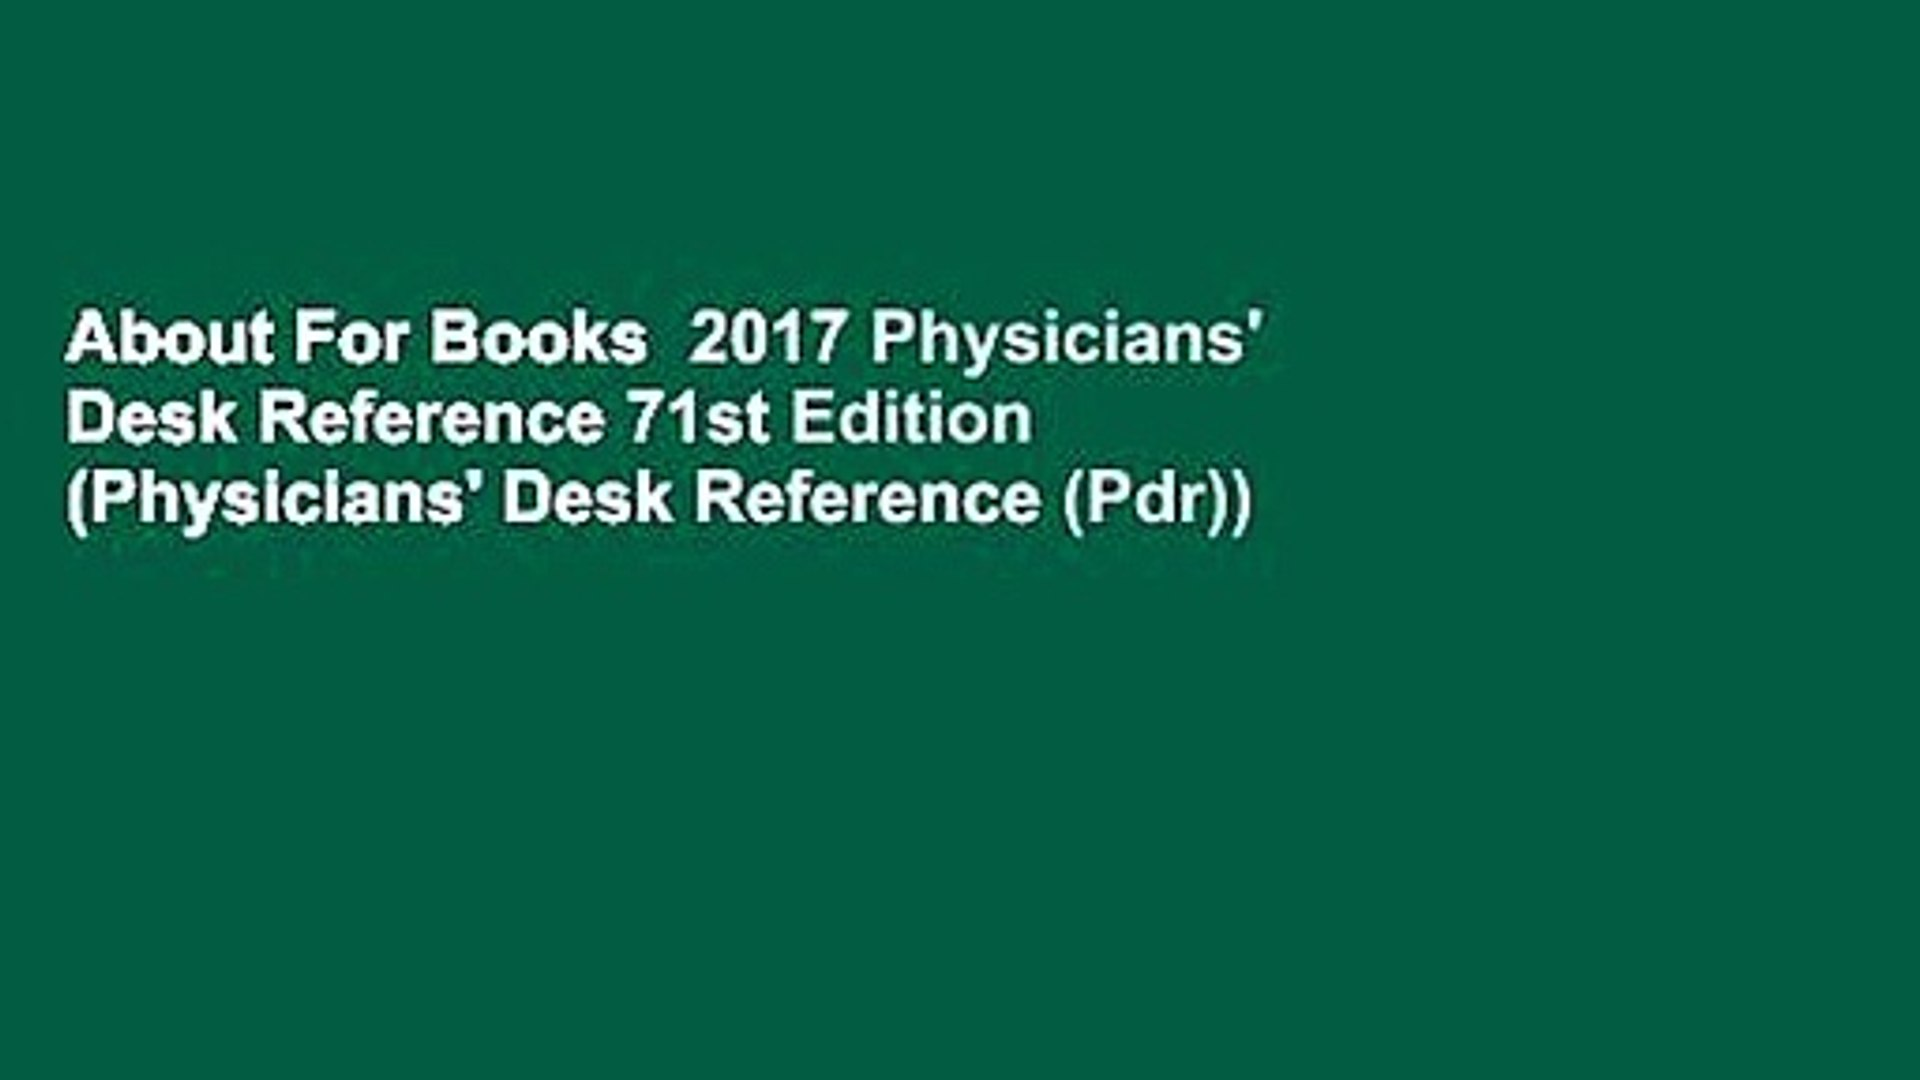 Admirable About For Books 2017 Physicians Desk Reference 71St Edition Physicians Desk Reference Pdr Download Free Architecture Designs Embacsunscenecom